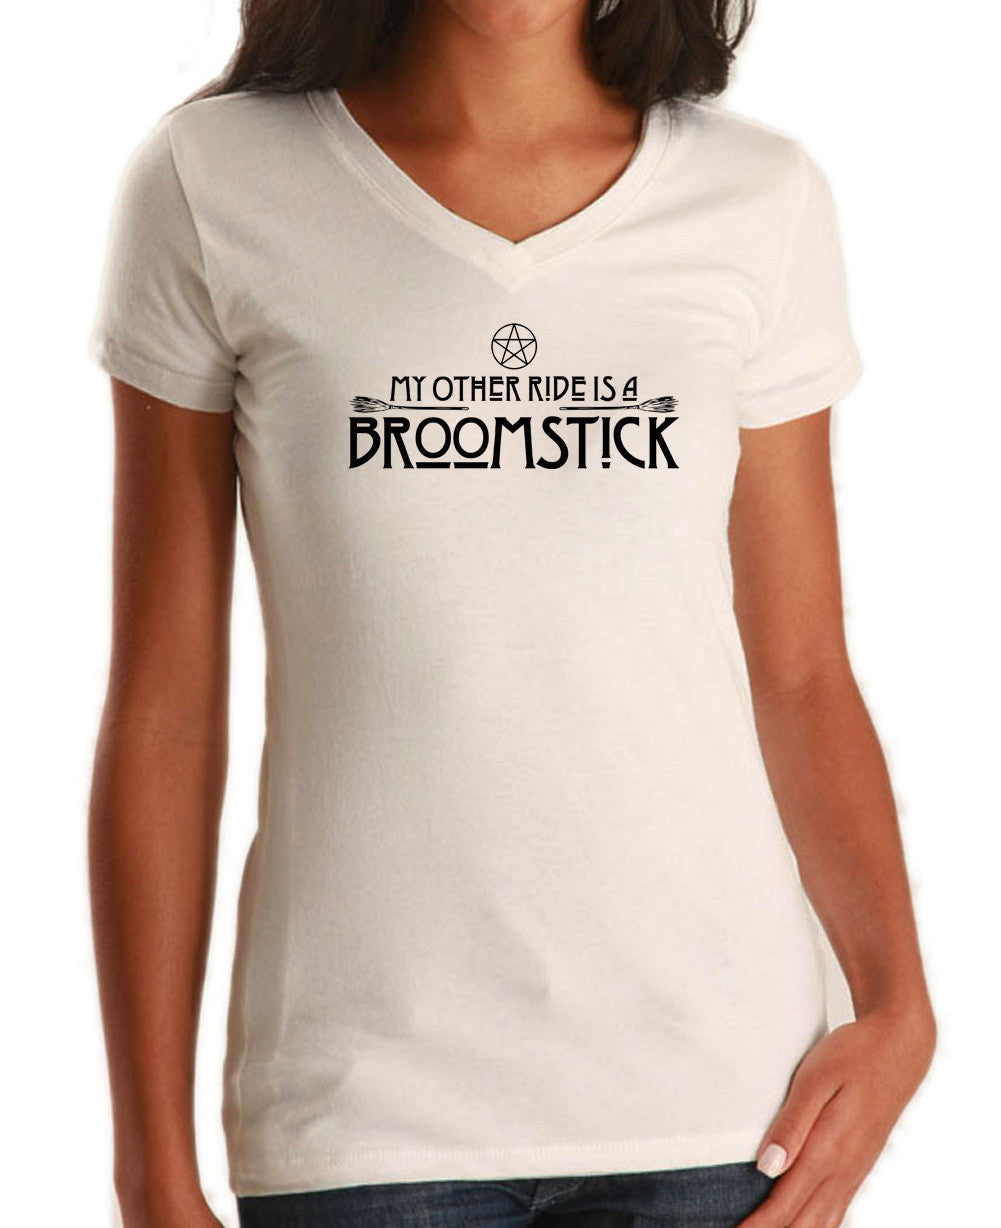 Women's My Other Ride is a Broomstick Vneck T-Shirt - Juniors Fit